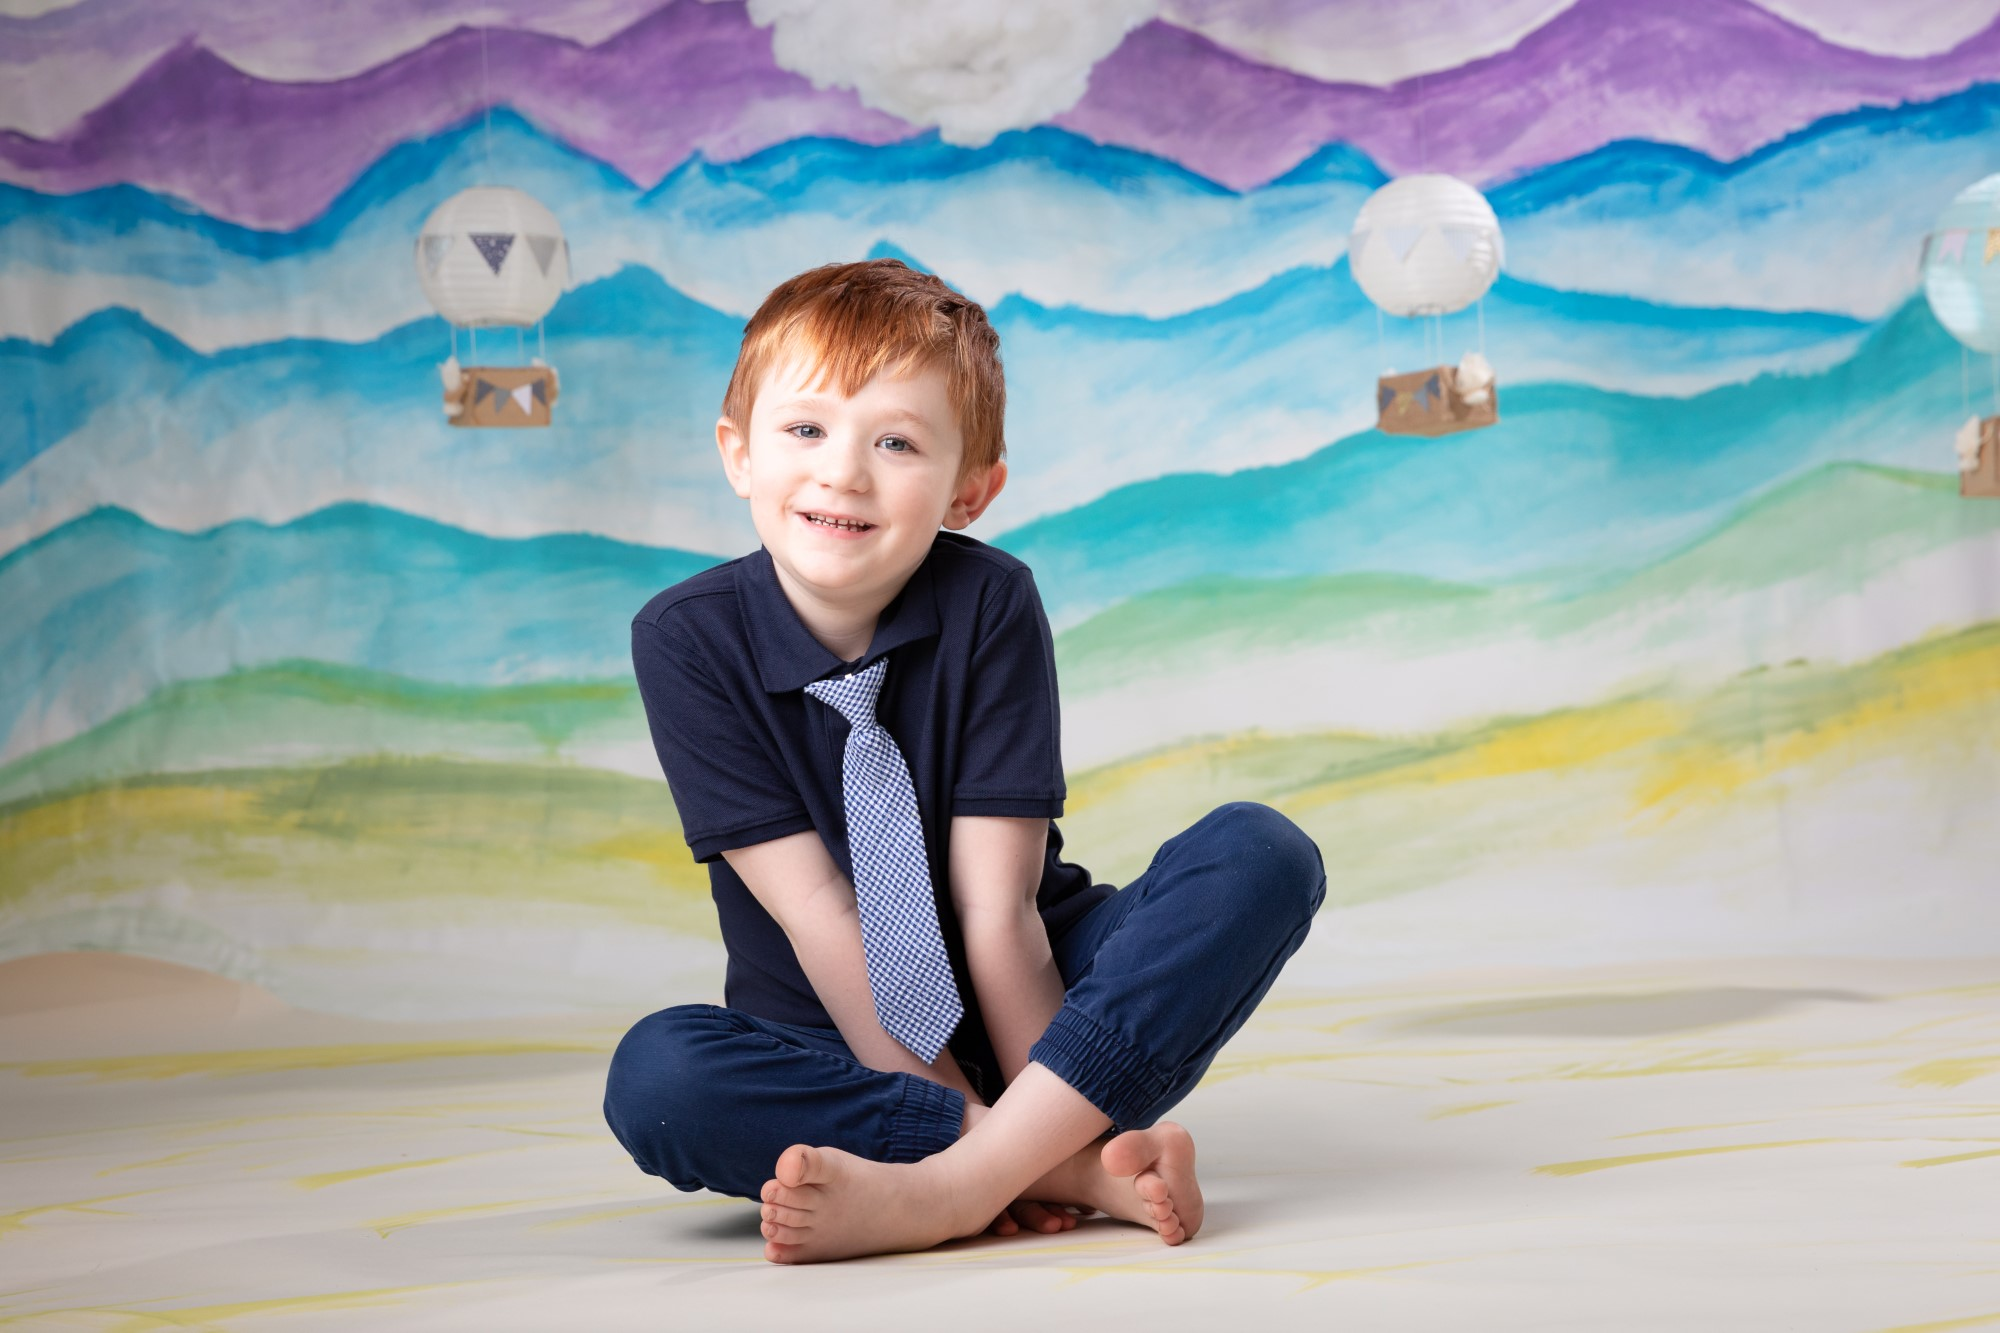 Adventure custom painted colorful backdrop hot air balloons